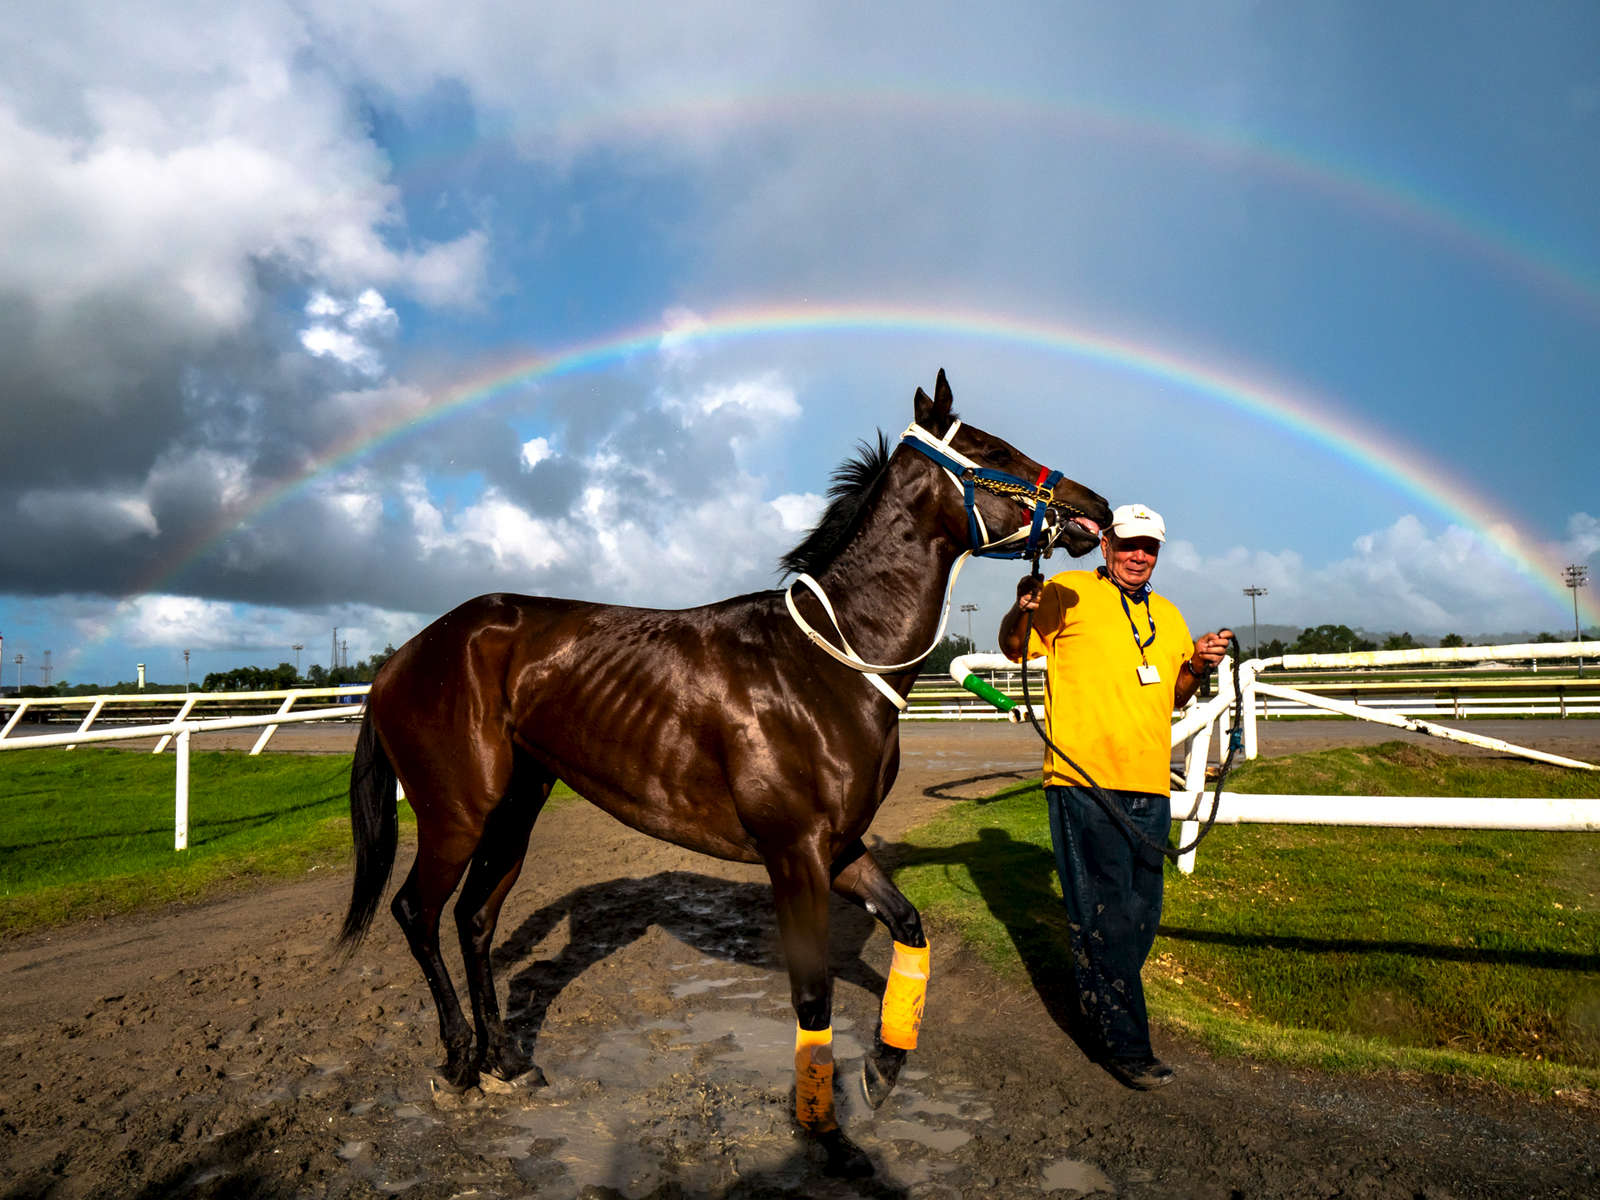 CANOVANAS, PUERTO RICO - NOVEMBER 11:  A horse is led off the track into the stables under a double rainbow at the Hipodromo Camarero on November 11, 2018 in Canovanas, Puerto Rico. The effort continues in Puerto Rico to remain and rebuild more than one year after the Hurricane Maria hit and devastated the island on September 20, 2017. The official number of deaths from the disaster is 2,975.